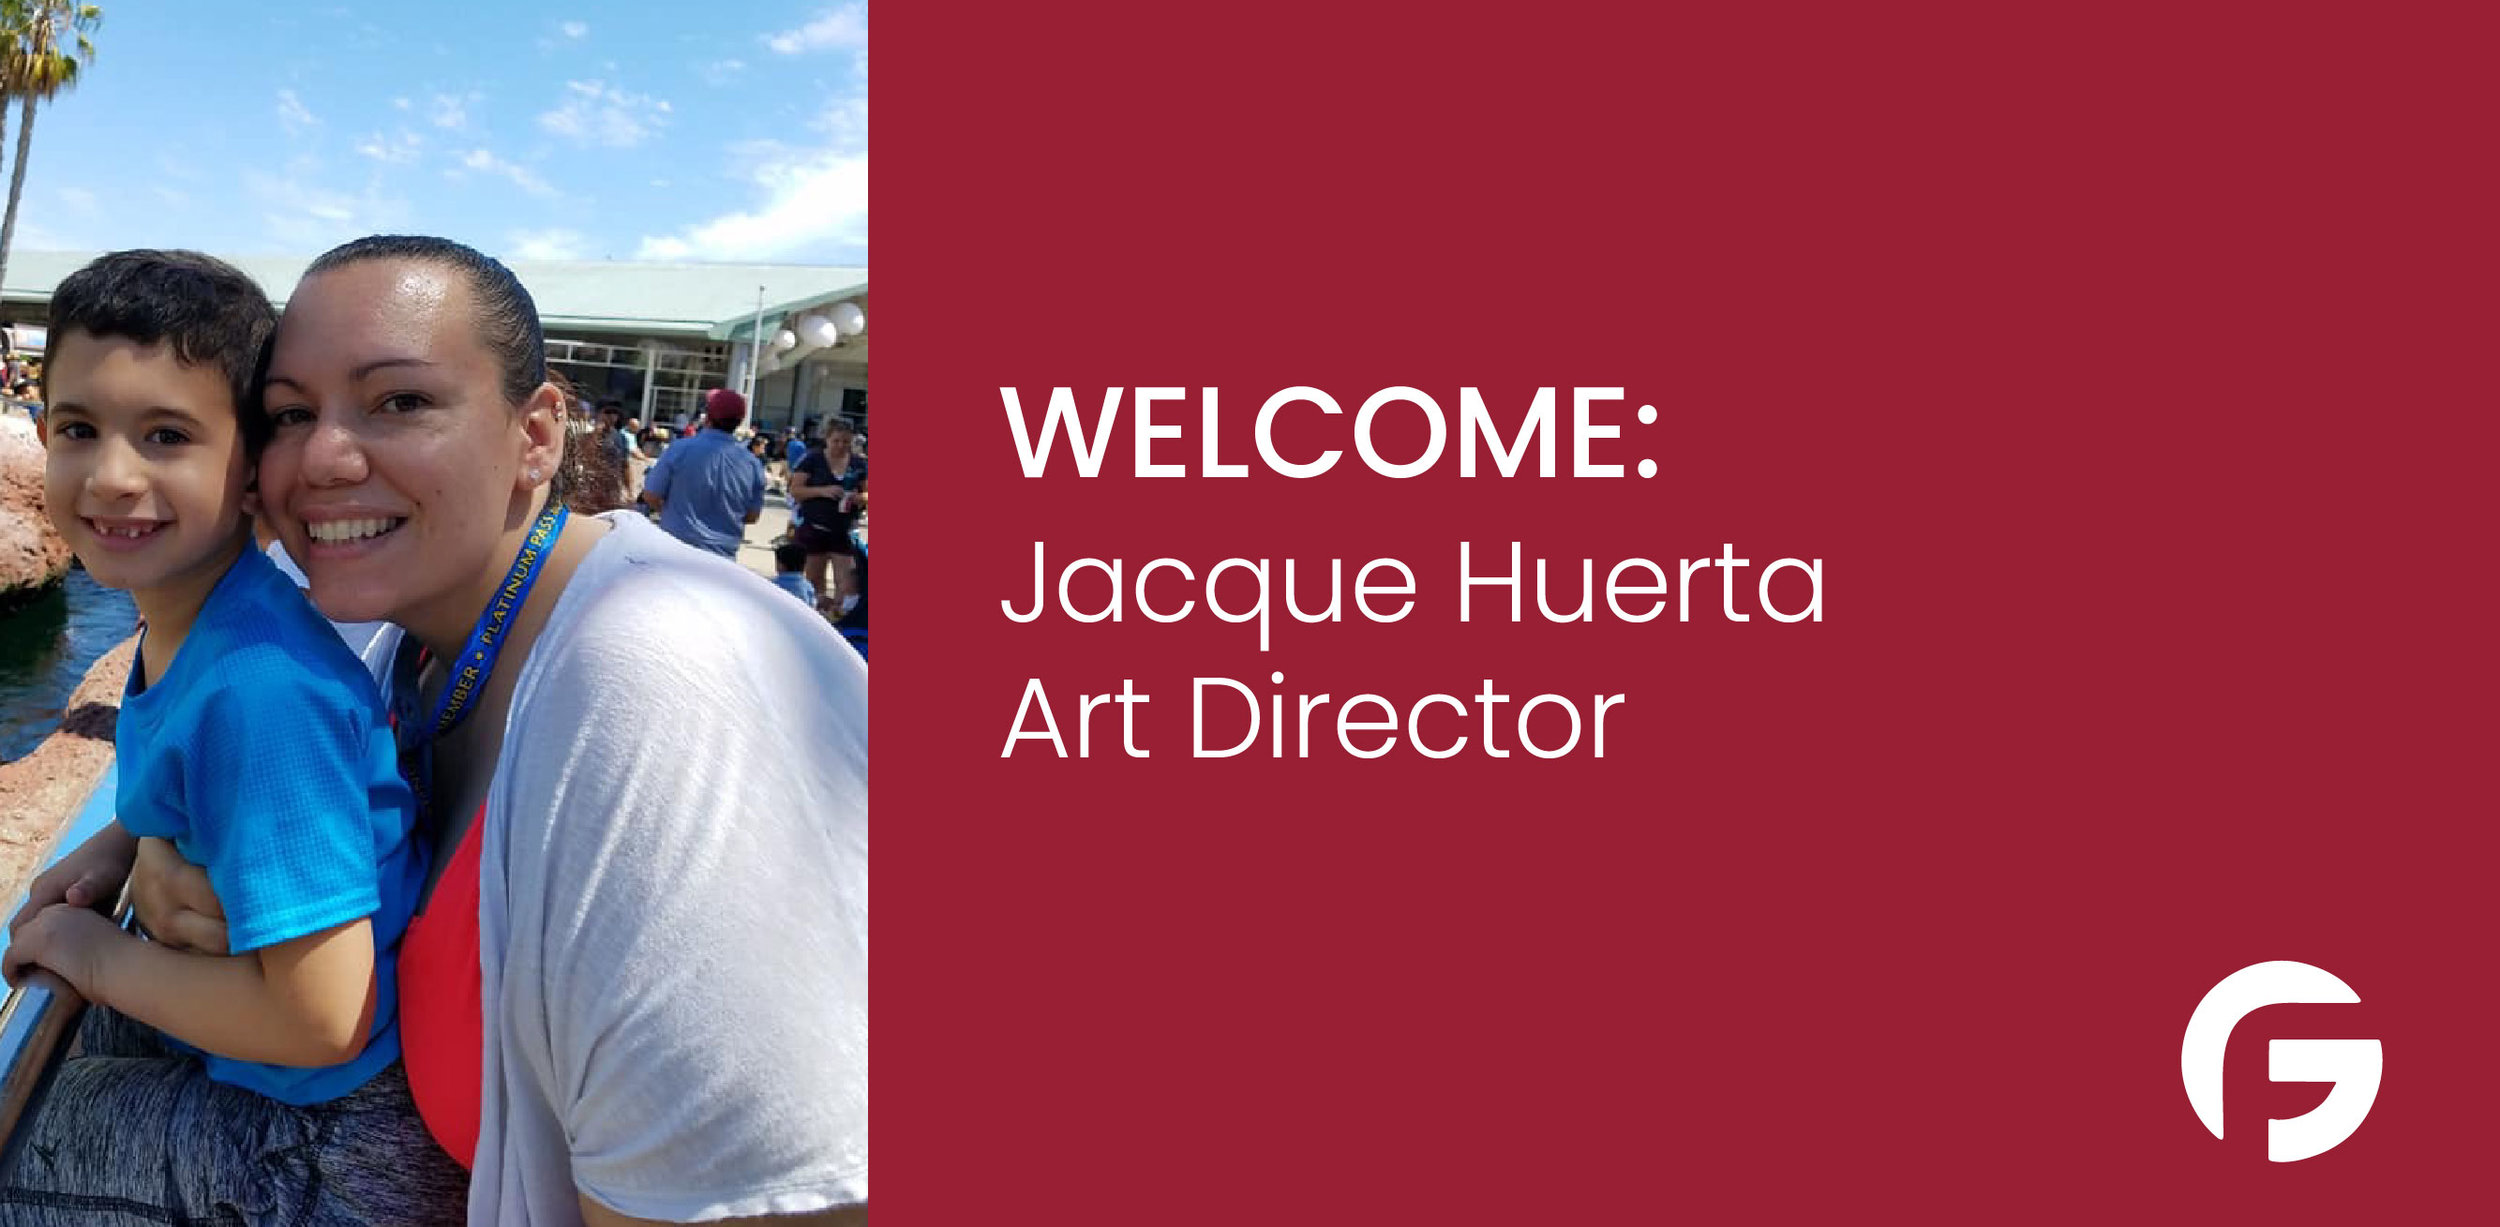 Geneva Financial welcomes new Art Director, Jacque Huerta